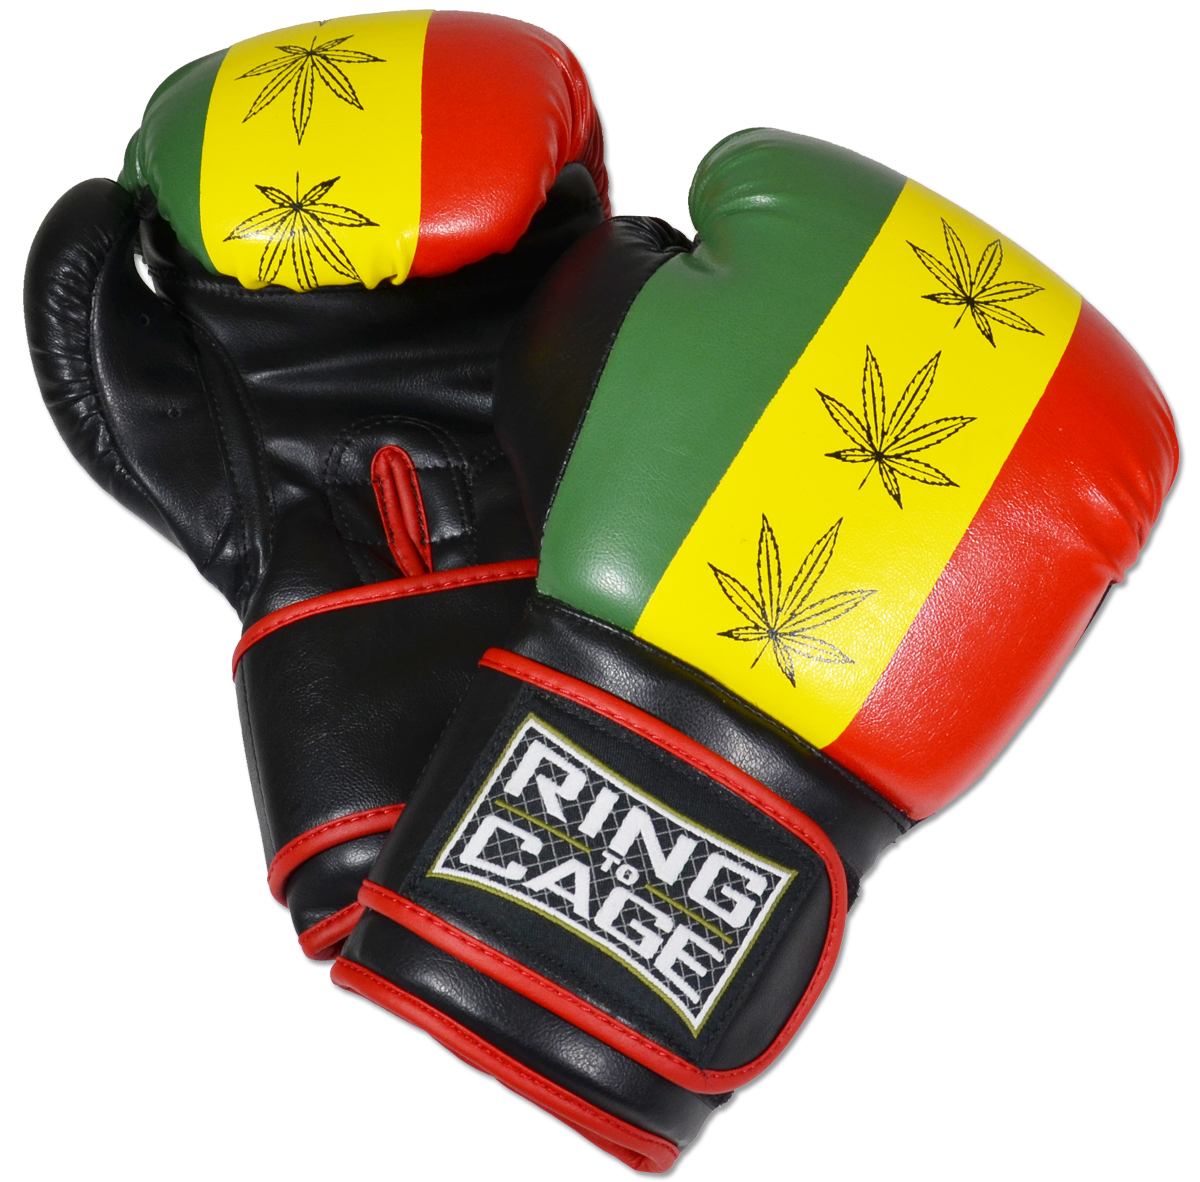 Gym Training Gloves - Rastafarian